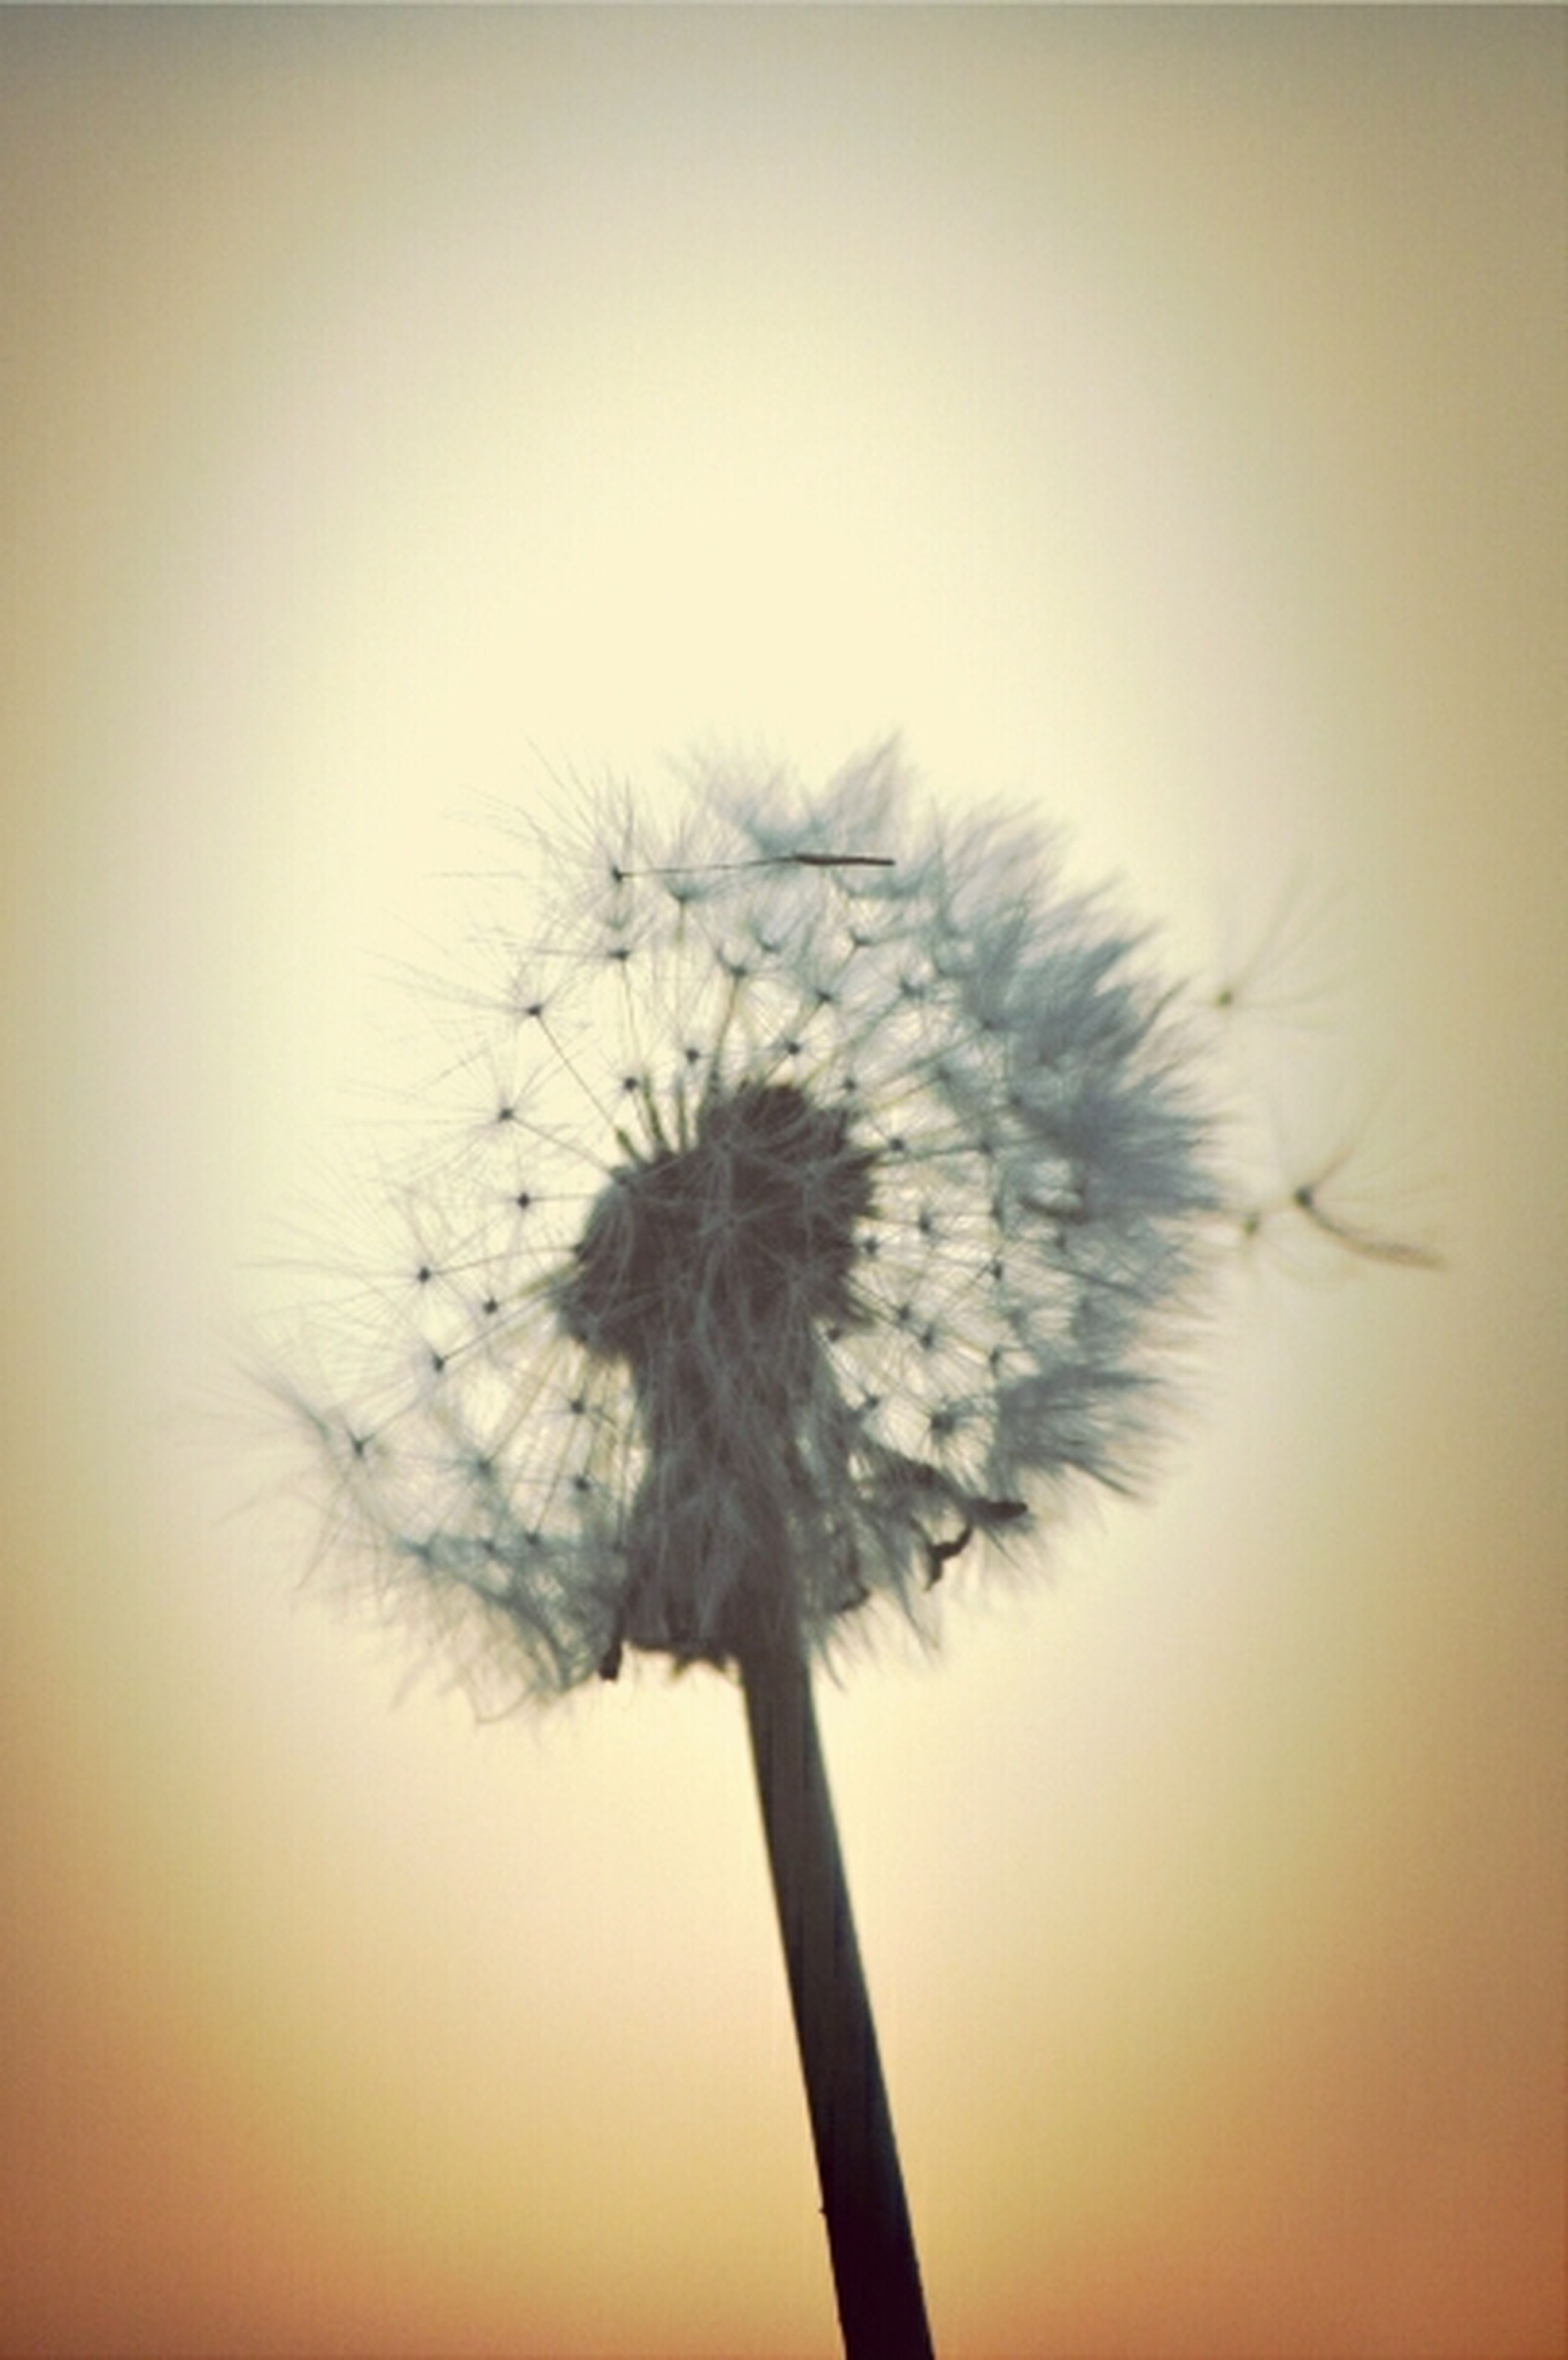 dandelion, stem, flower, growth, nature, fragility, beauty in nature, close-up, flower head, plant, single flower, no people, softness, copy space, sky, freshness, tranquility, outdoors, focus on foreground, simplicity